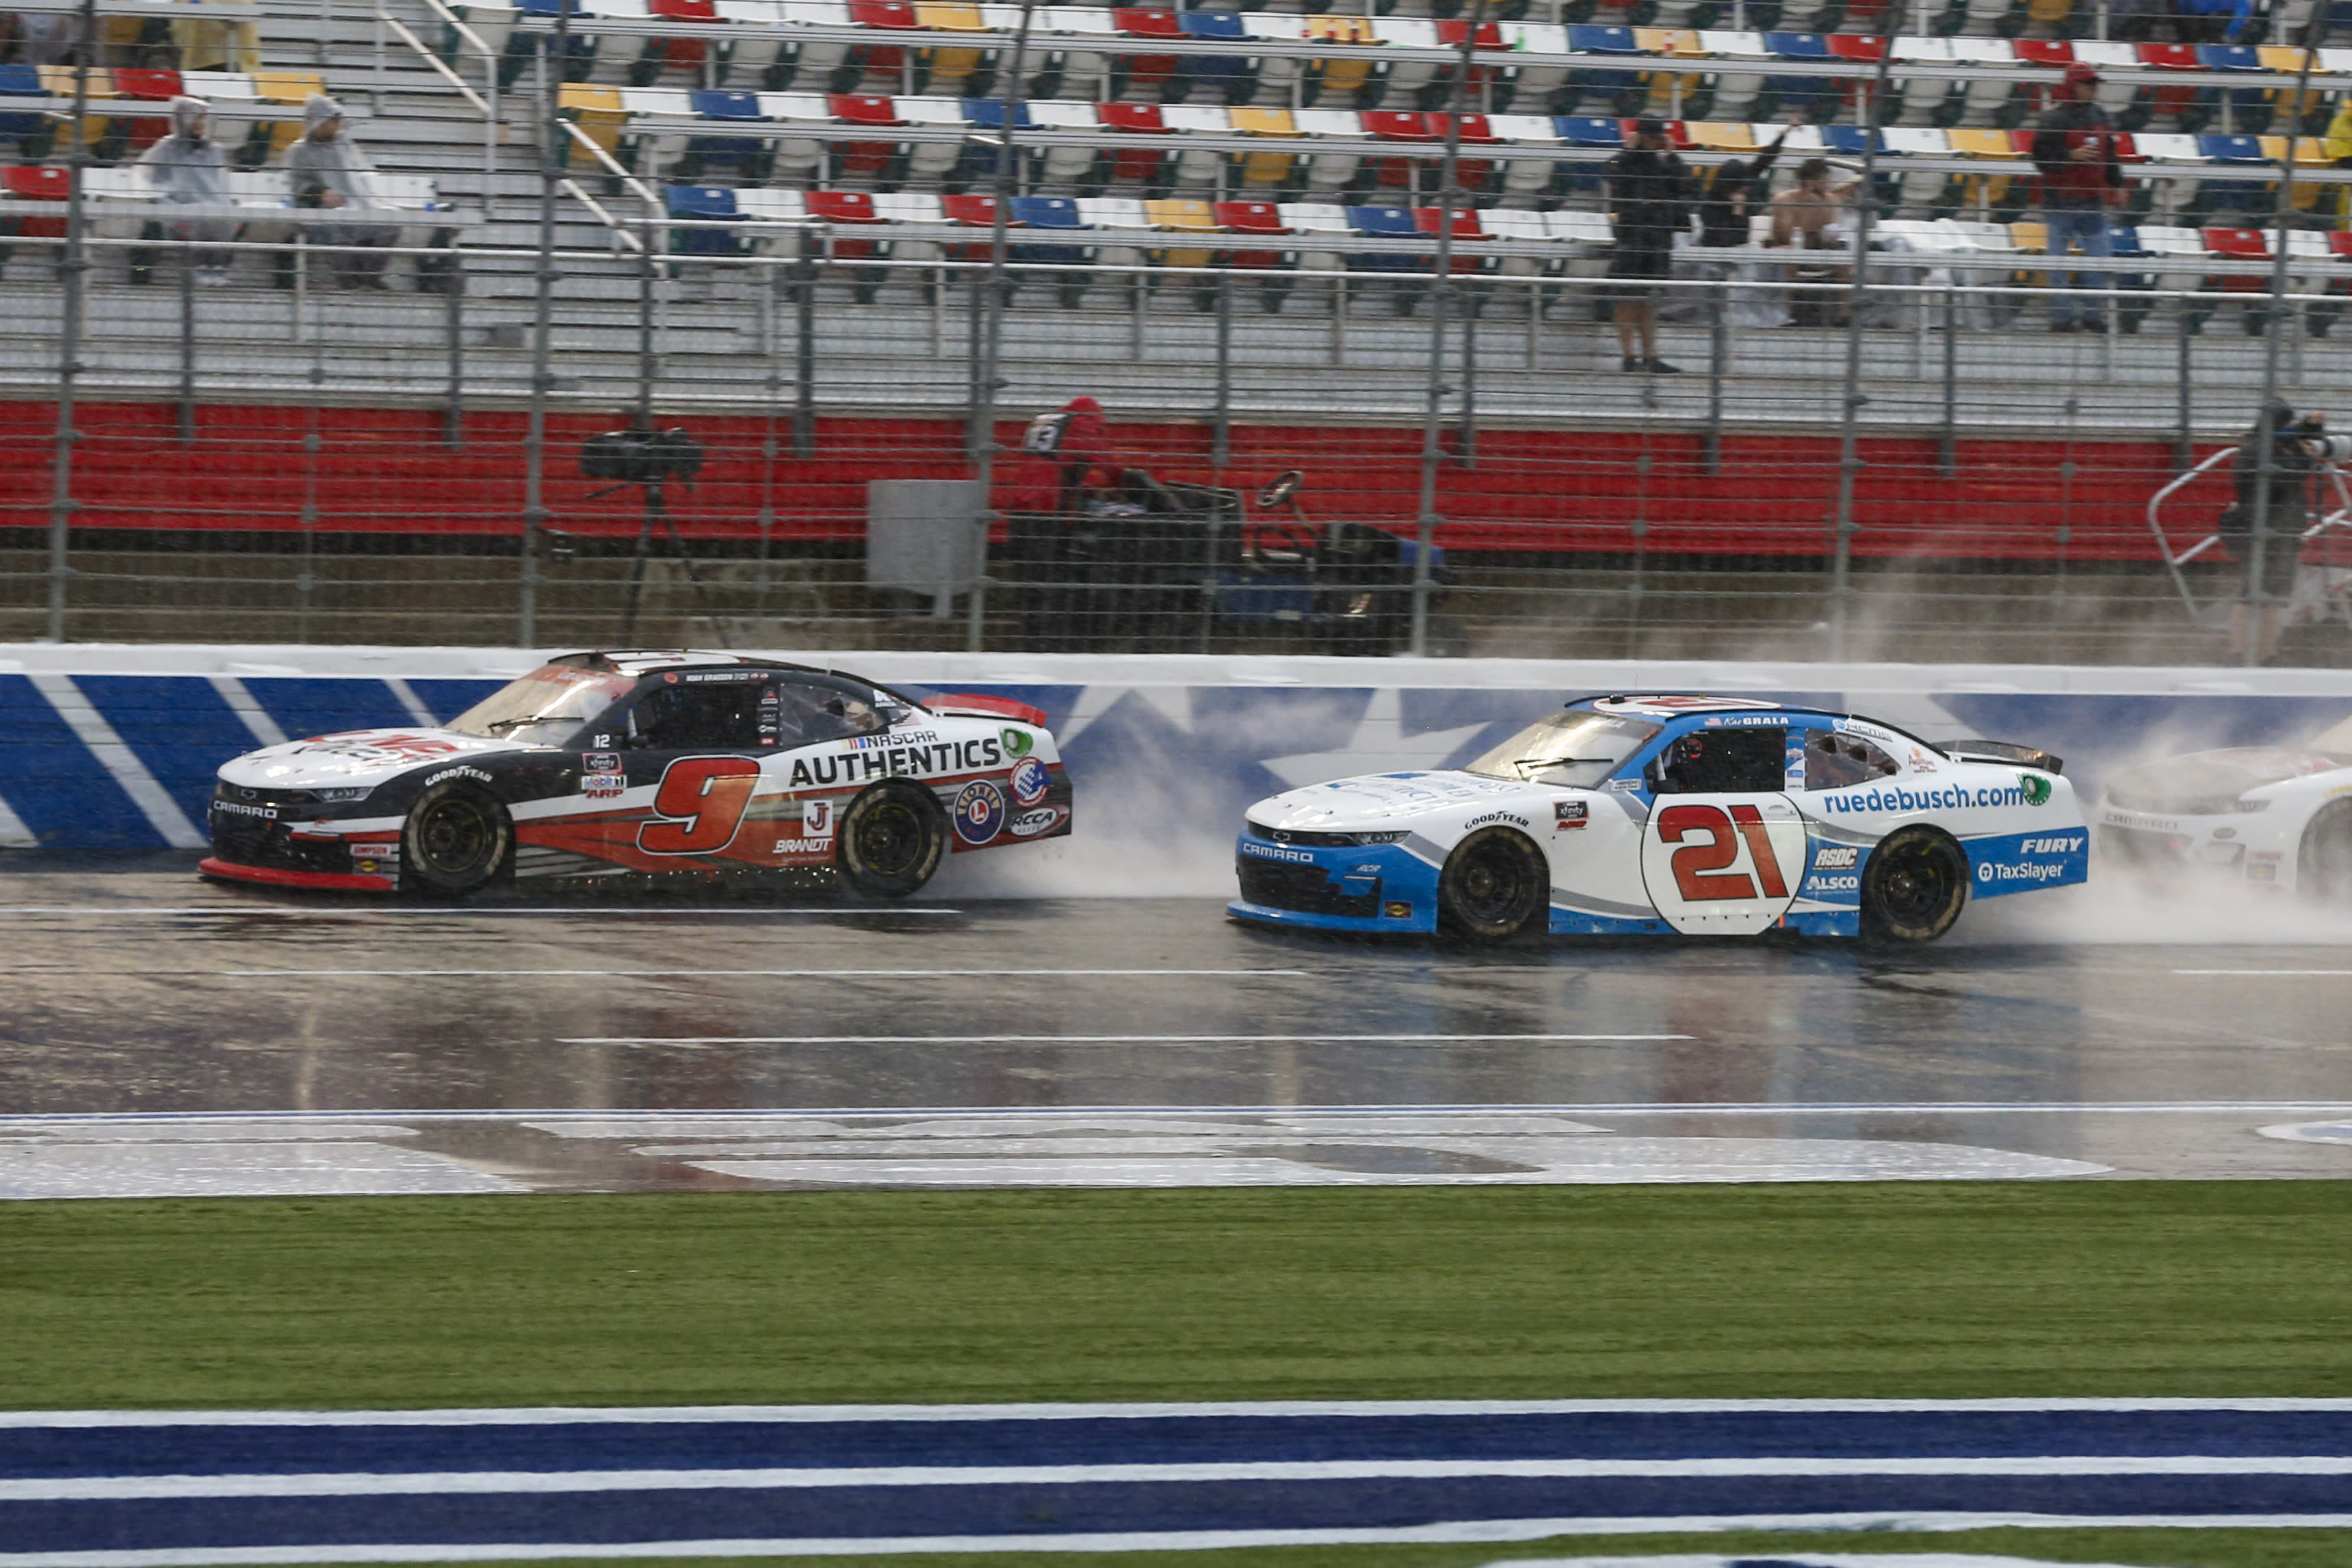 Noah Gragson (9) and Kaz Grala (21) compete in the rain during a NASCAR Xfinity Series auto race at Charlotte Motor Speedway in Concord, N.C., Saturday, Oct. 10, 2020. (AP Photo/Nell Redmond)